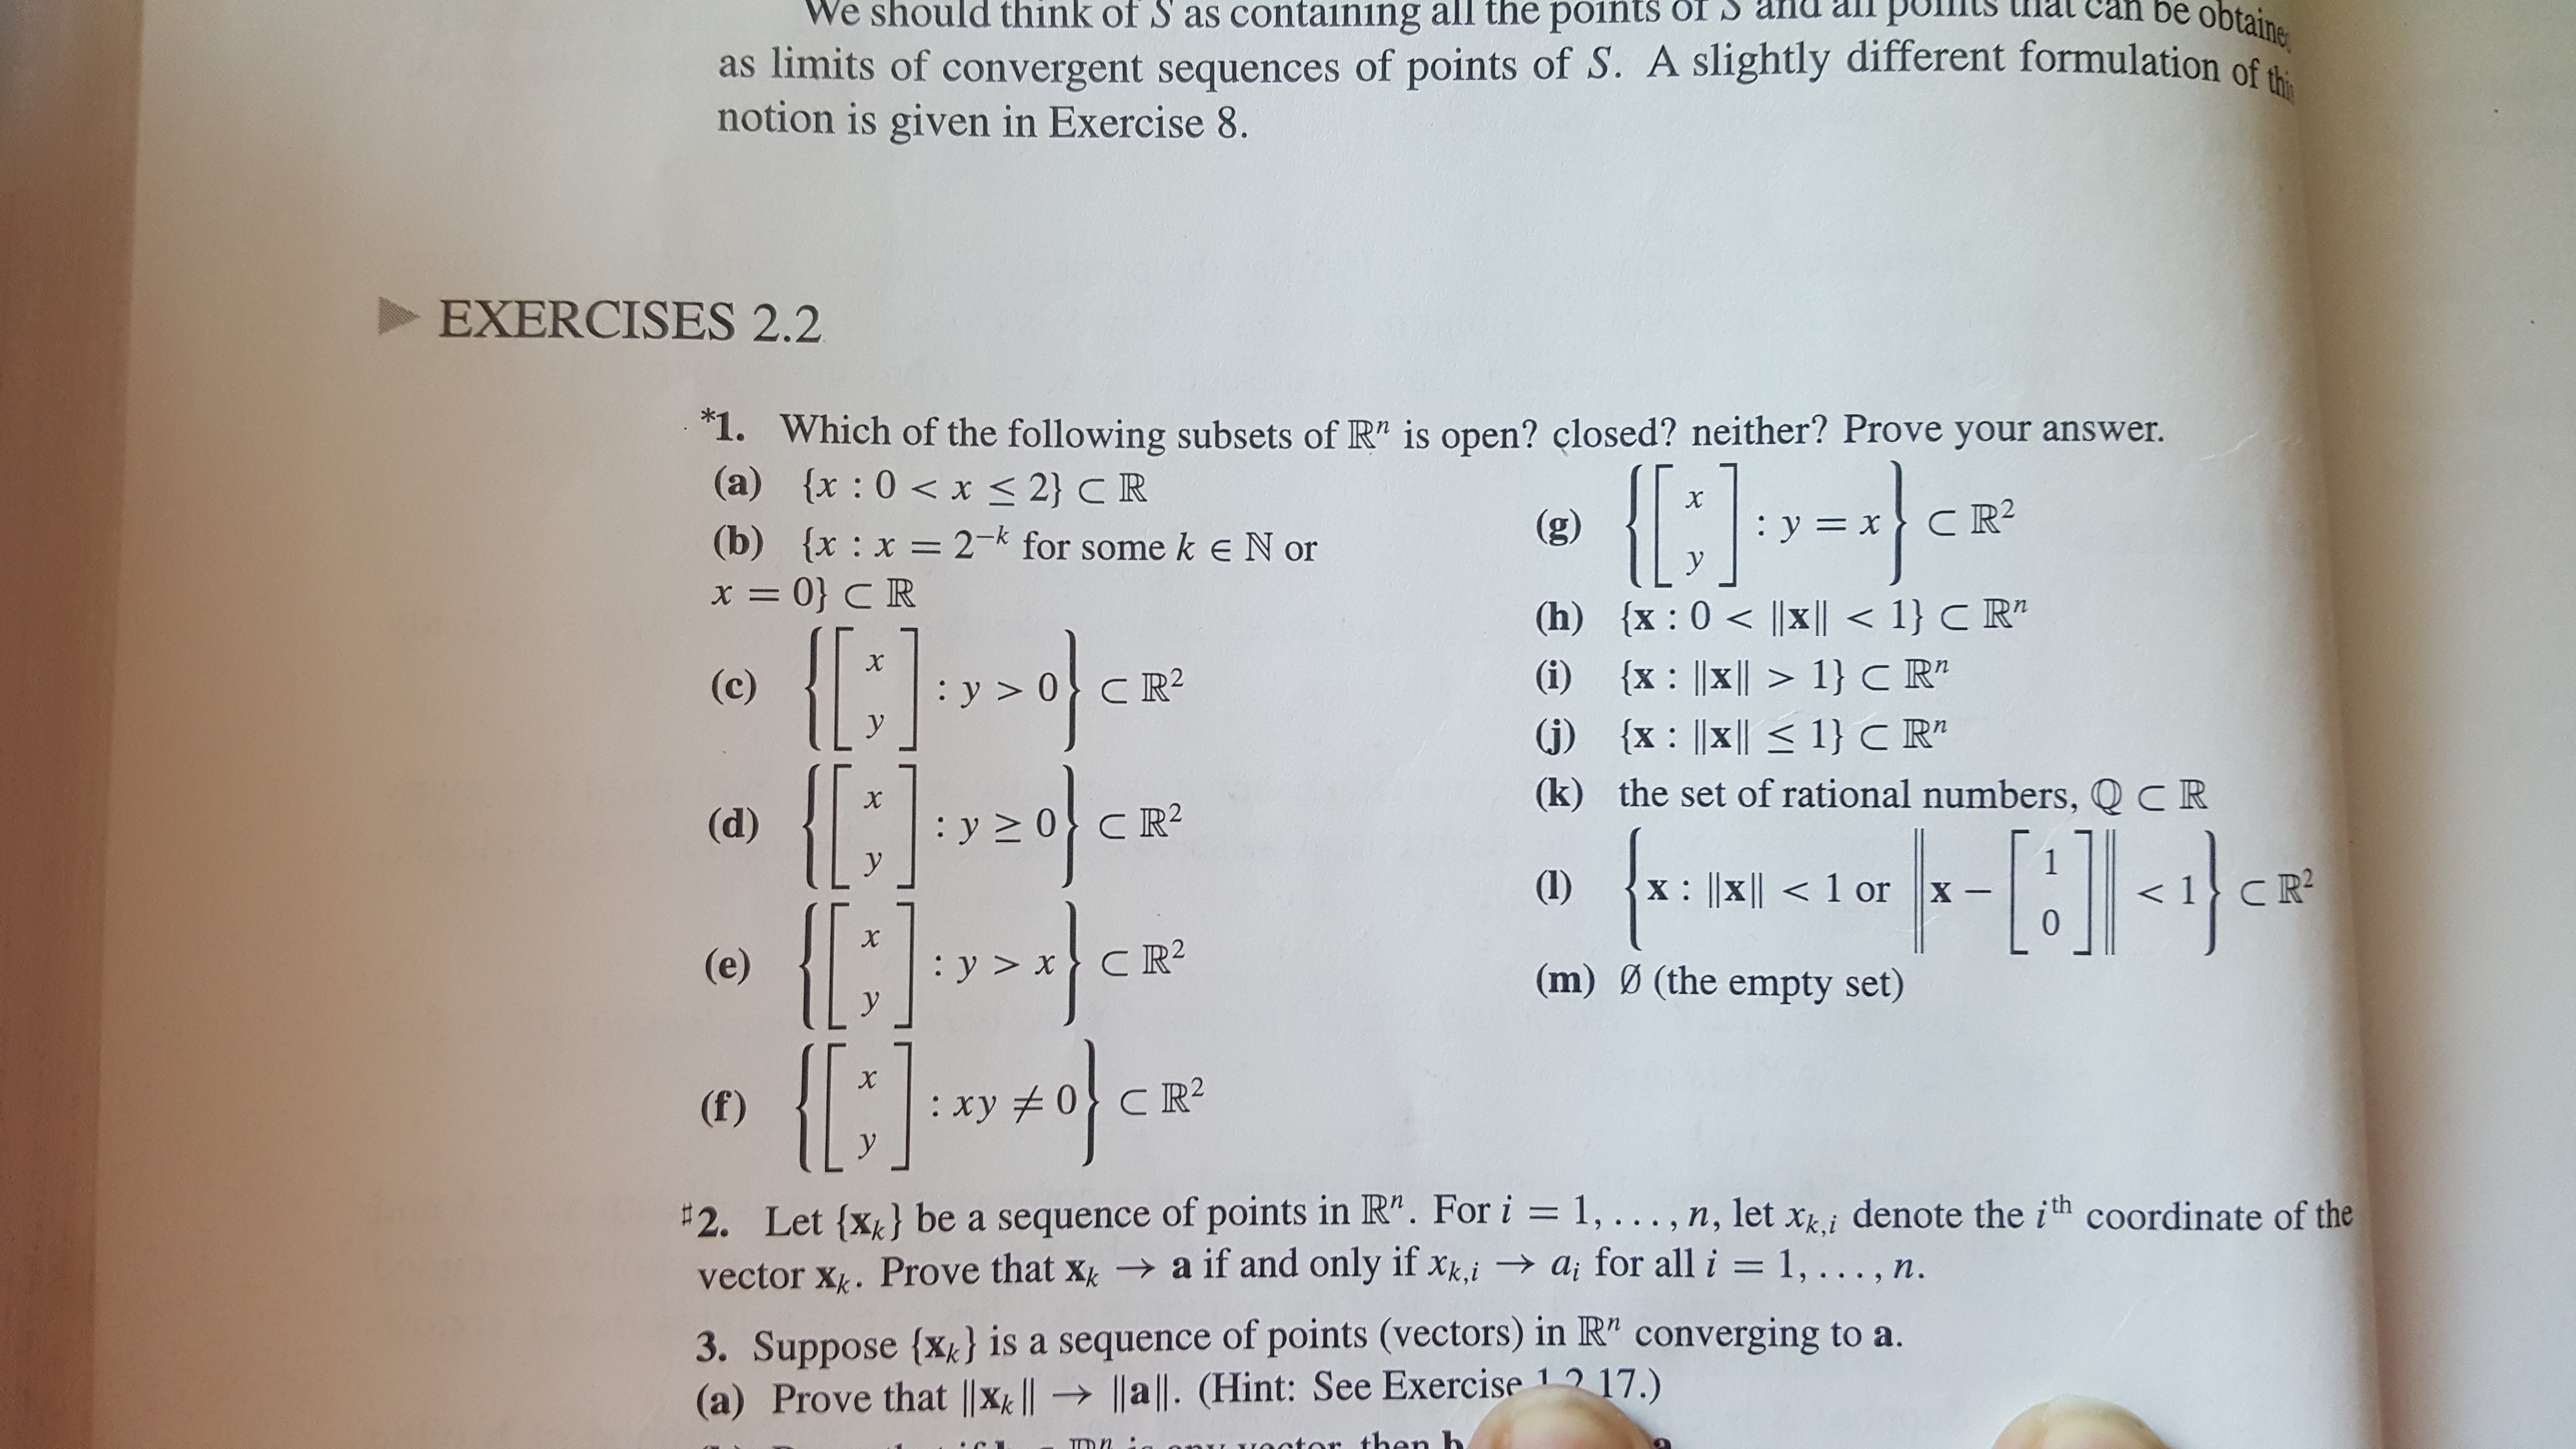 """We should think of S as containing all the points OI S anu all puts as limits of convergent sequences of points of S. A slightly different formulation of th notion is given in Exercise 8. an be obtaine EXERCISES 2.2 1. Which of the following subsets of R"""" is open? closed? neither? Prove your answer. (a) x : 0x < 2} C R (b) {x x 2- for some keN or x= 0} C R (g) : y=xCR : X = y (h) x: 0 x 